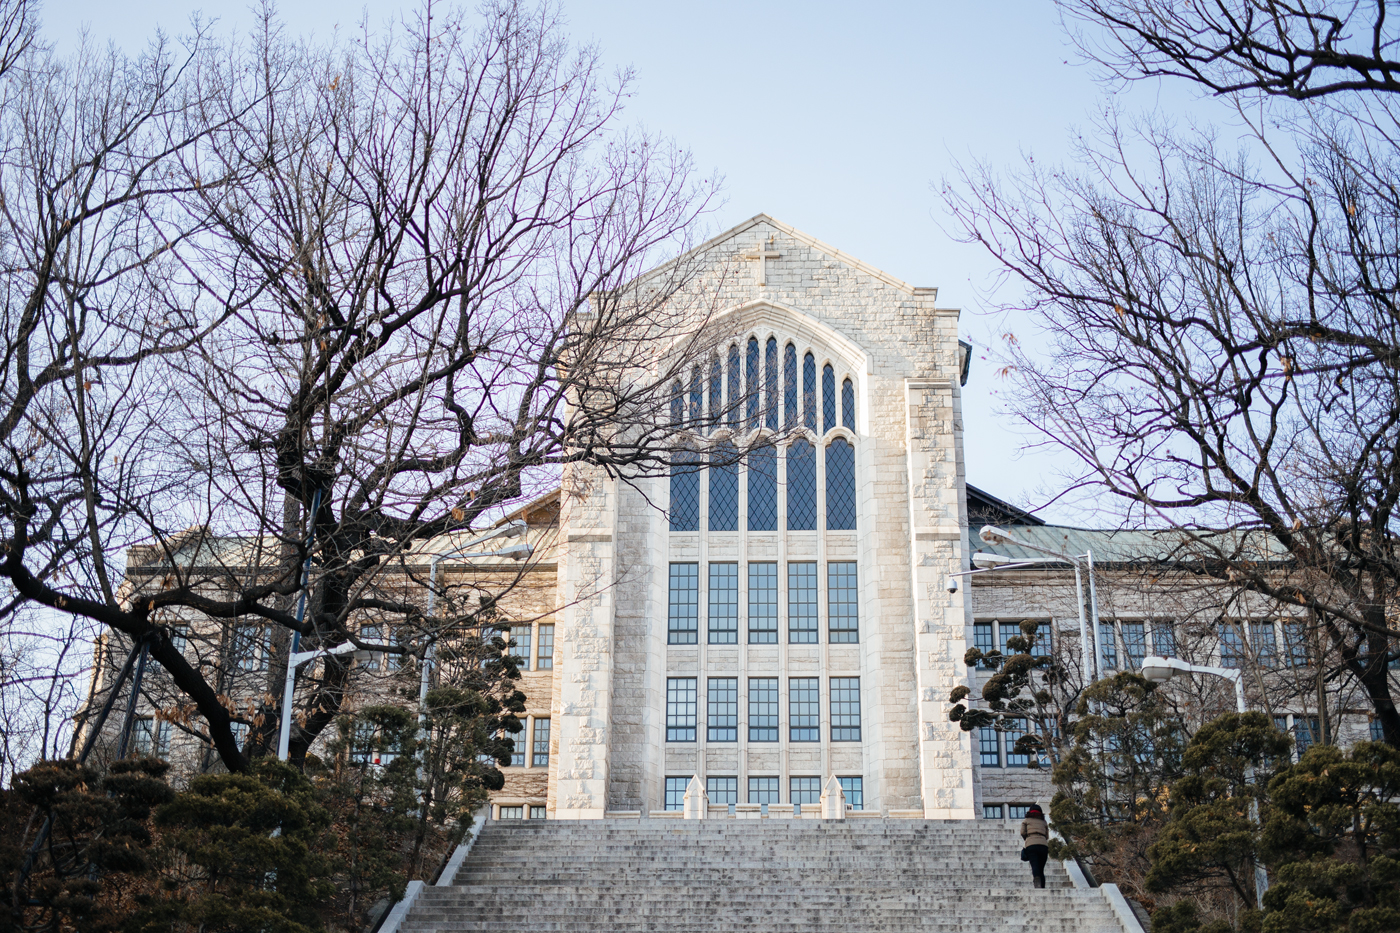 Winter in Seoul: Ewha Campus Complex (이화여자대학교), Seoul, South Korea.